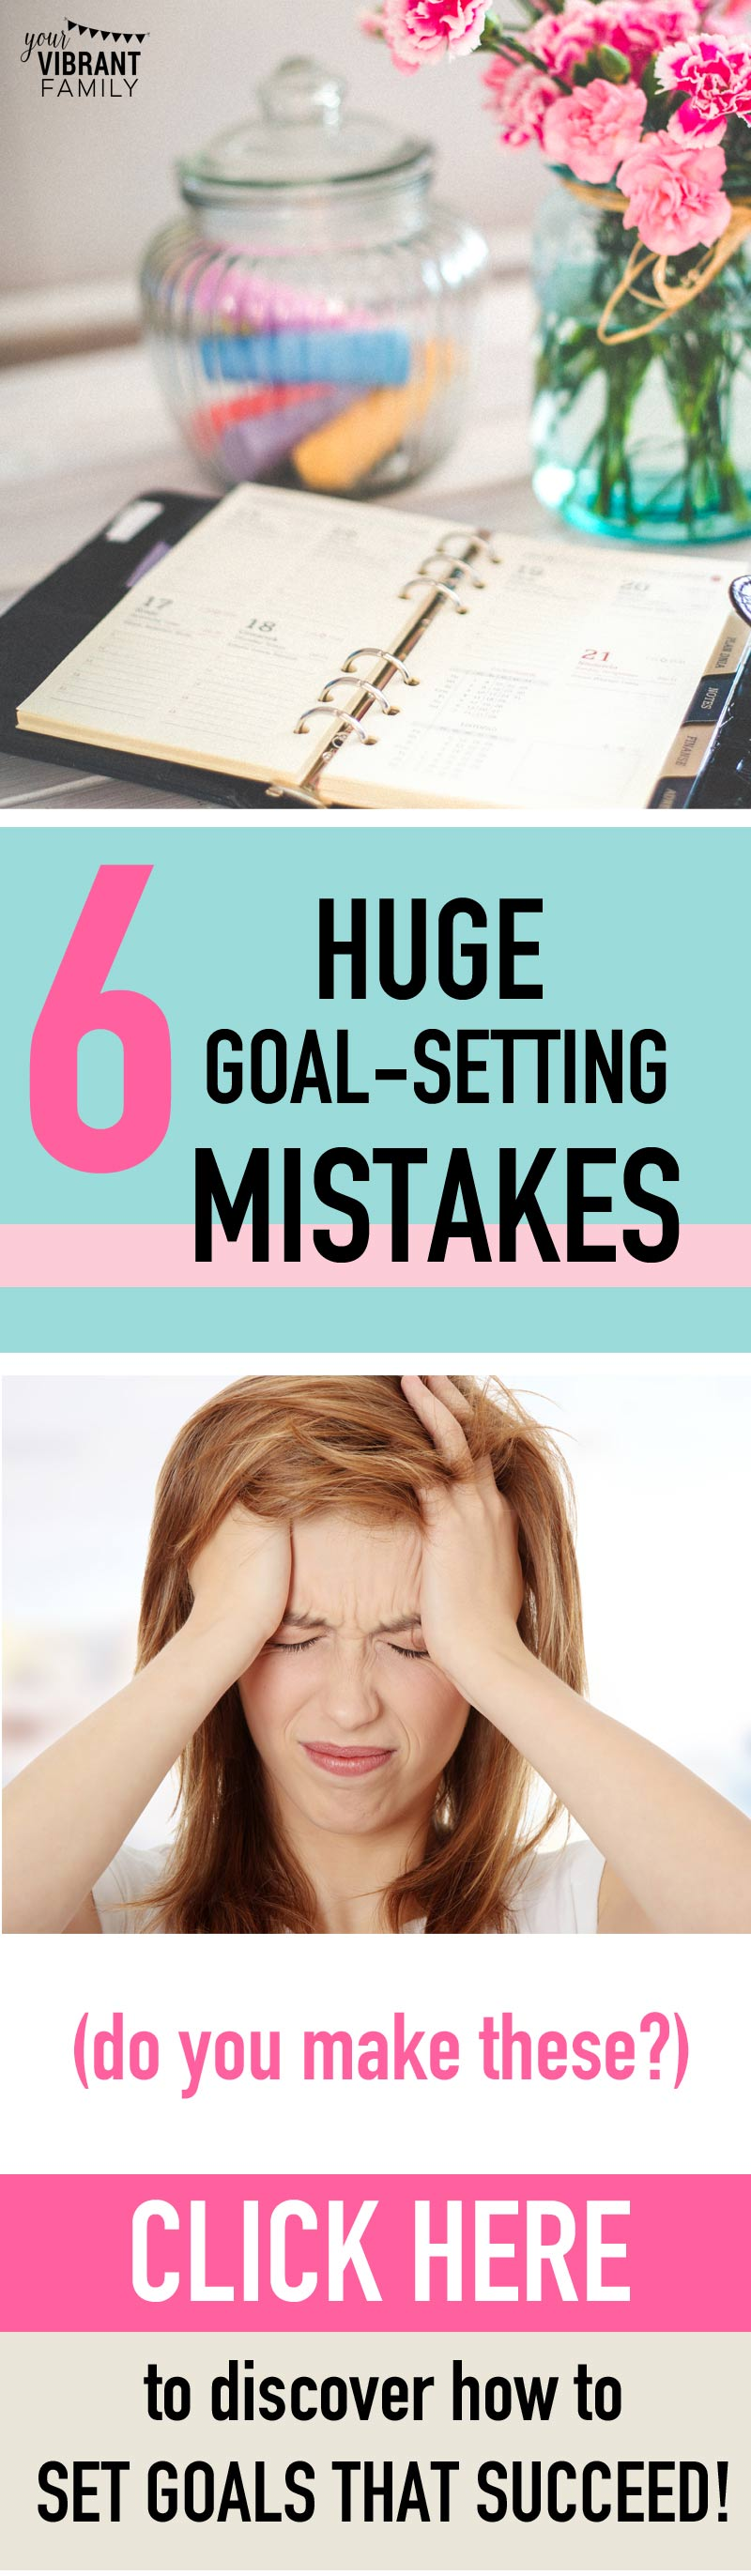 TIRED OF MAKING NEW YEARS GOALS THAT DON'T WORK? You may be making these 6 big goal setting mistakes. I made them for a long time (especially #1)... I'm actually excited to set New Years resolutions now because I can finally meet my goals and feel successful (no more guilt)...